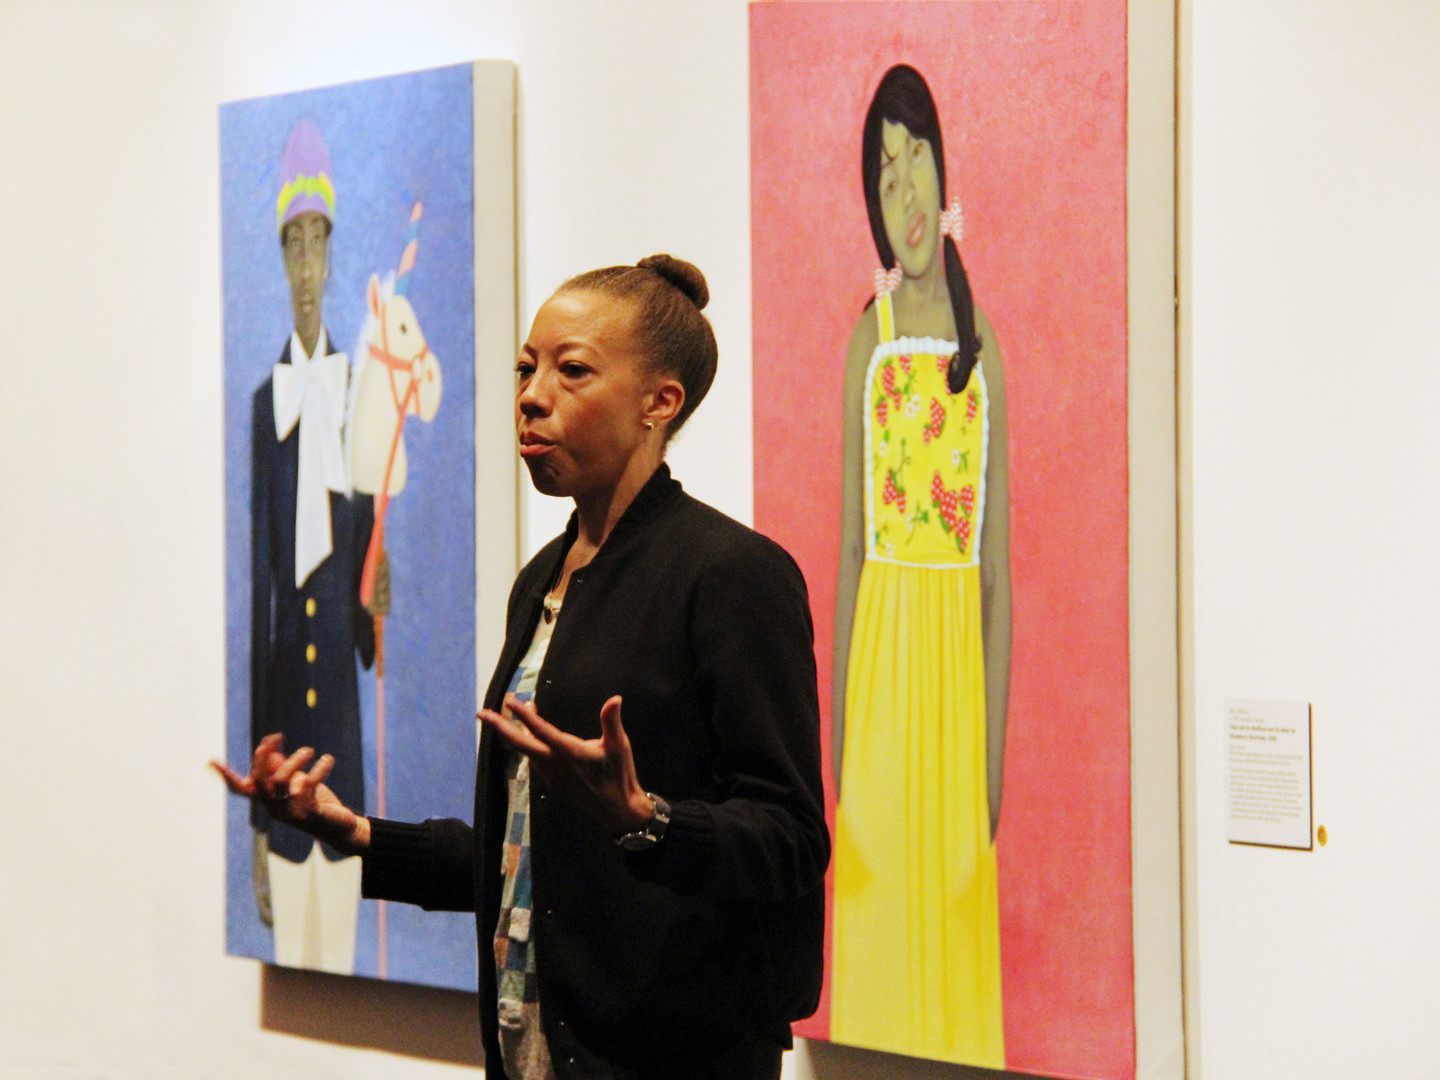 Amy Sherald speaks to a crowd in a gallery beside her striking portraits depicting individuals with gray skintones against vibrant, solid-colored backgrounds. She gestures with her hands and has a serious expression on her face.